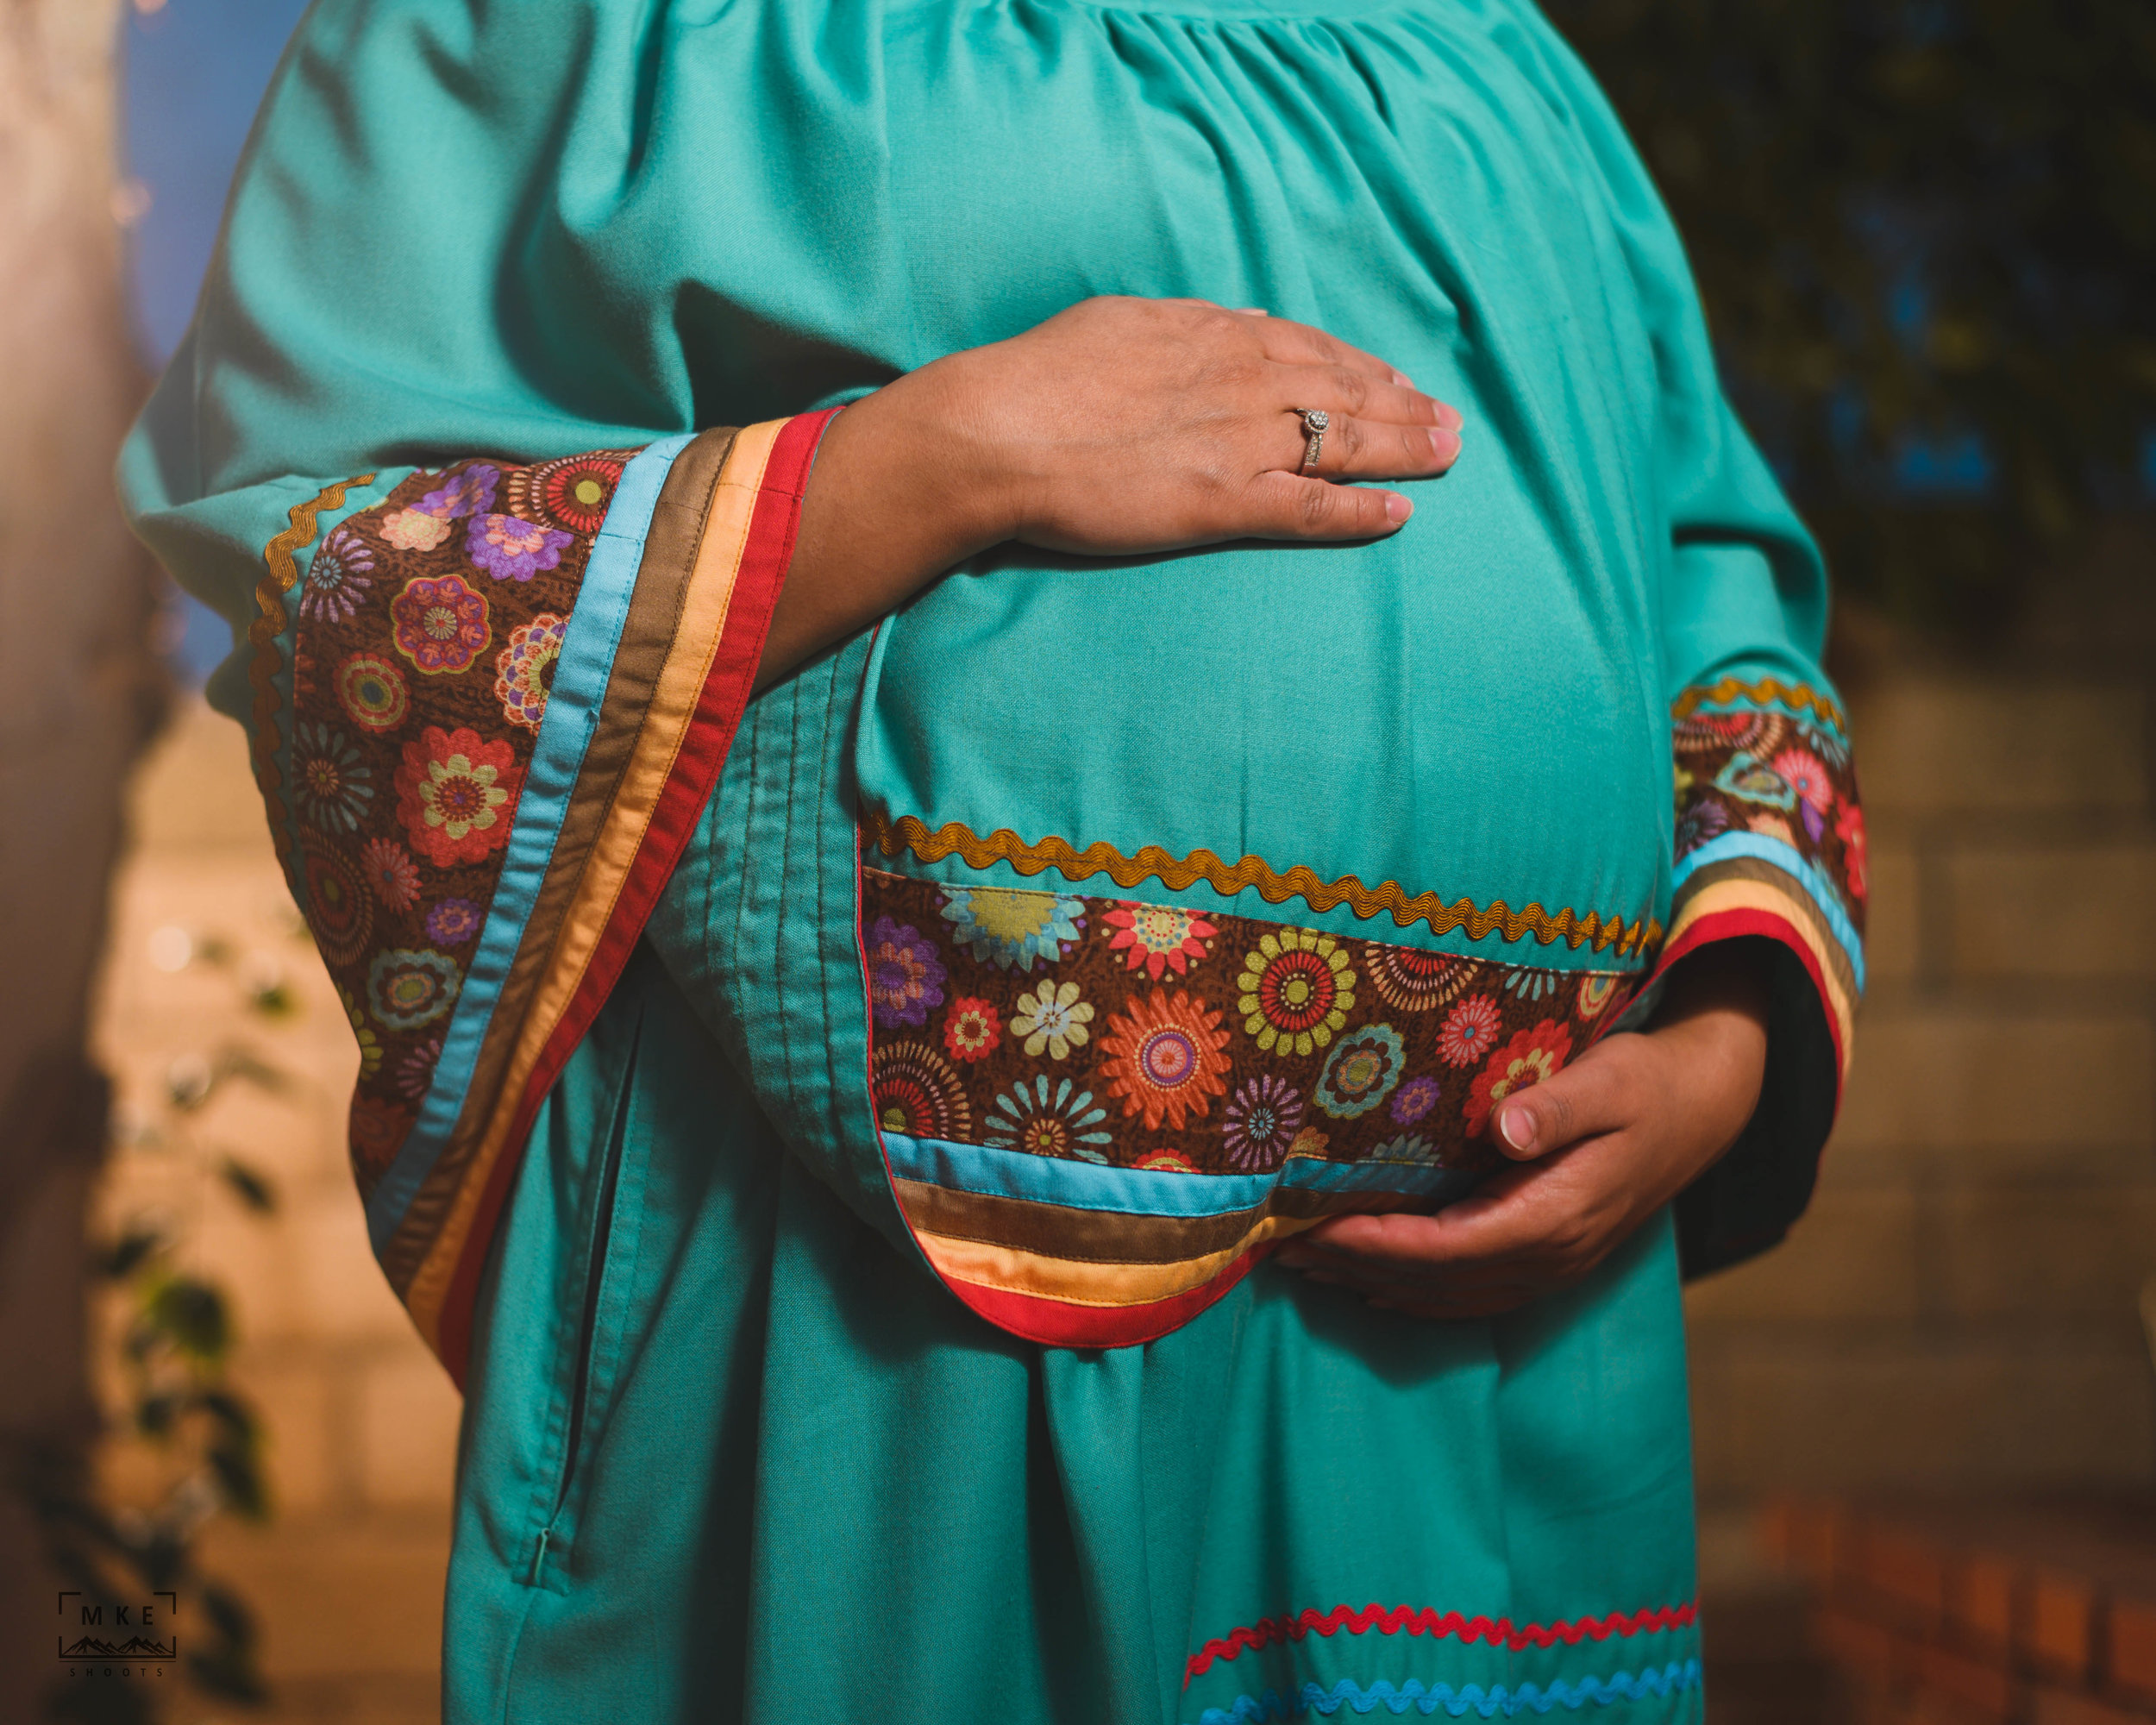 Maternity shoot - Celebrate this life-changing period in your life with an exquisite maternity shoot.Starts from $300